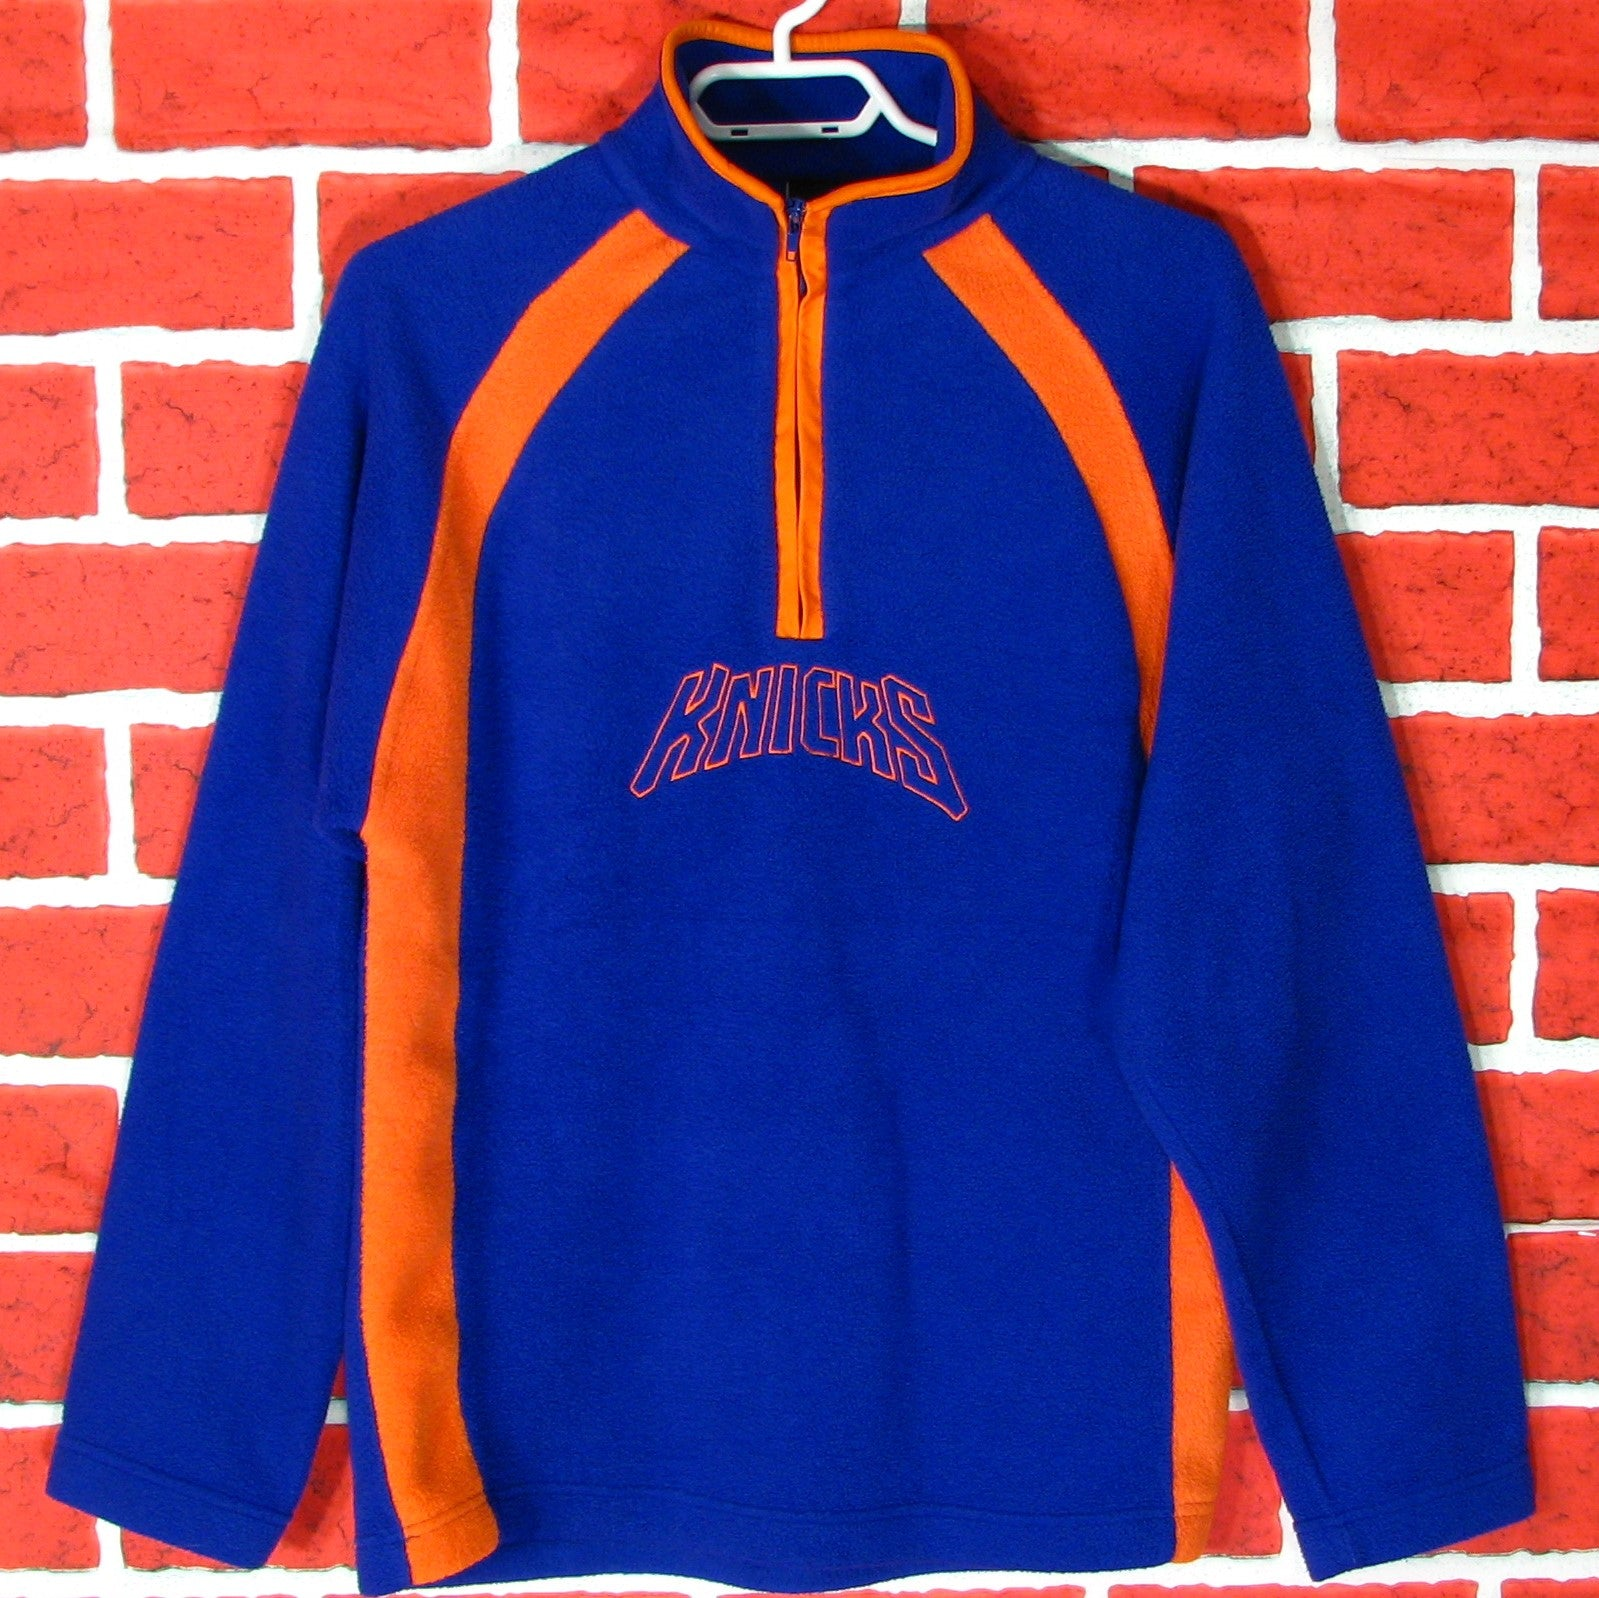 New York Knicks Fleece Sweatshirt